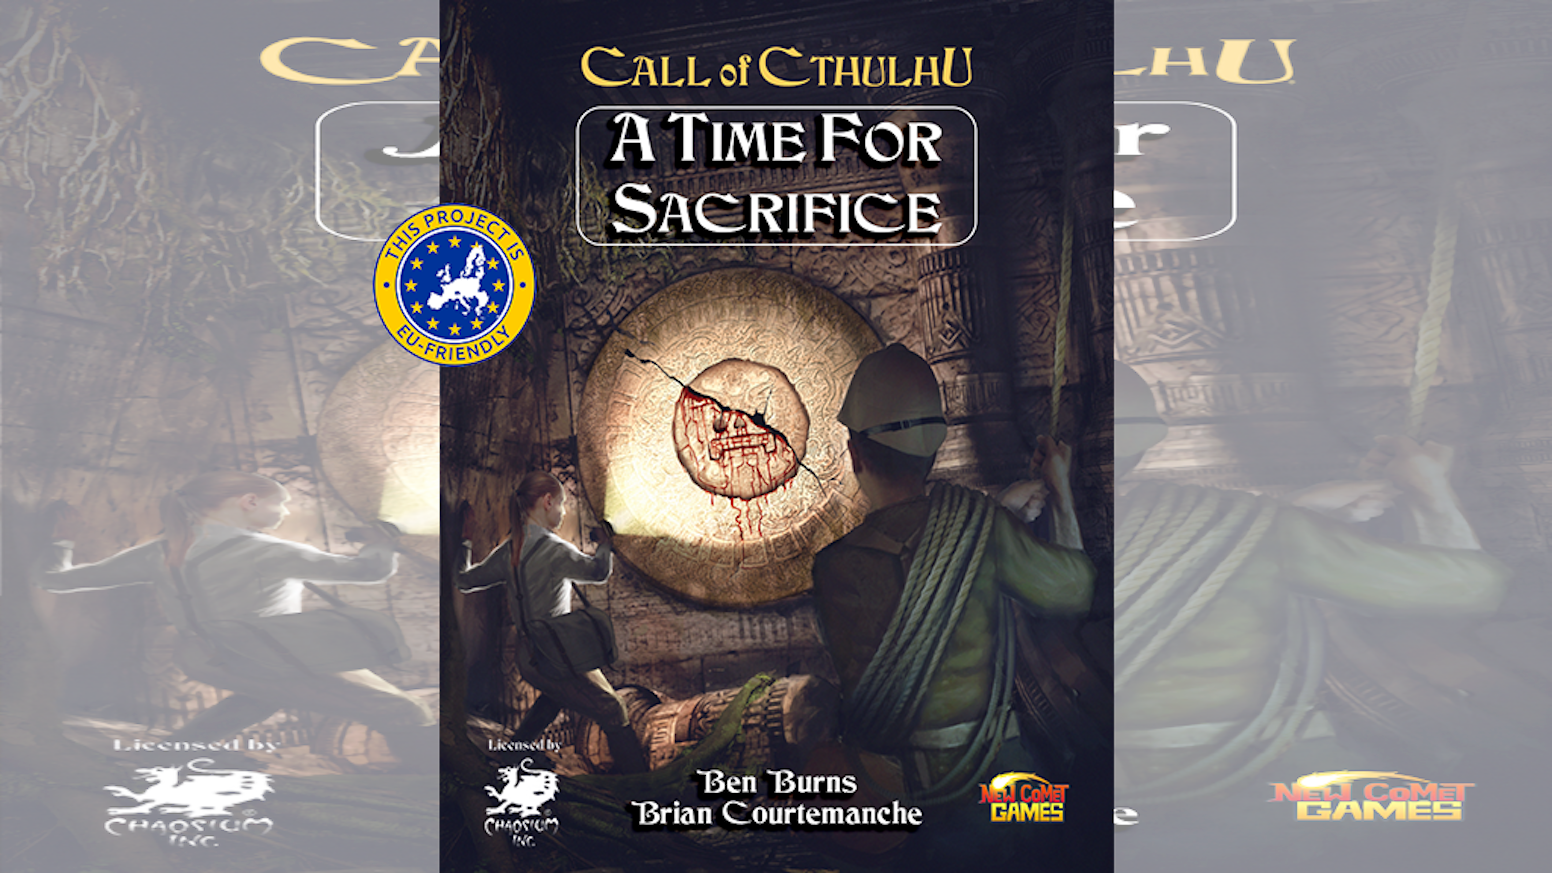 """A Time For Sacrifice"" is a Call of Cthulhu 7th edition adventure book set in Central/South America in the classic 1920's time era.Missed out, No worries..."